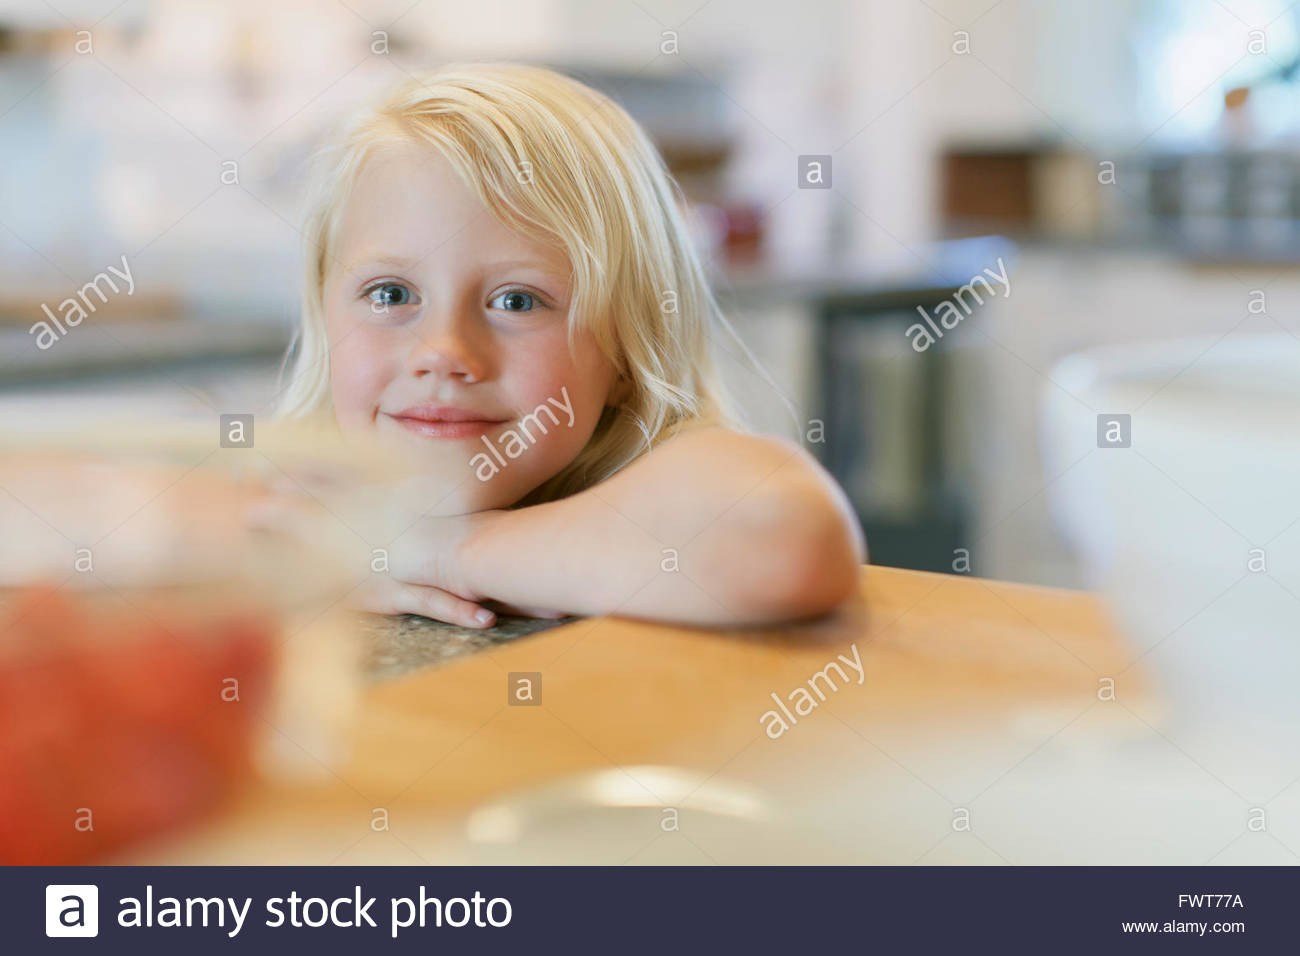 Cute young girl leaning on counter. - Stock Image